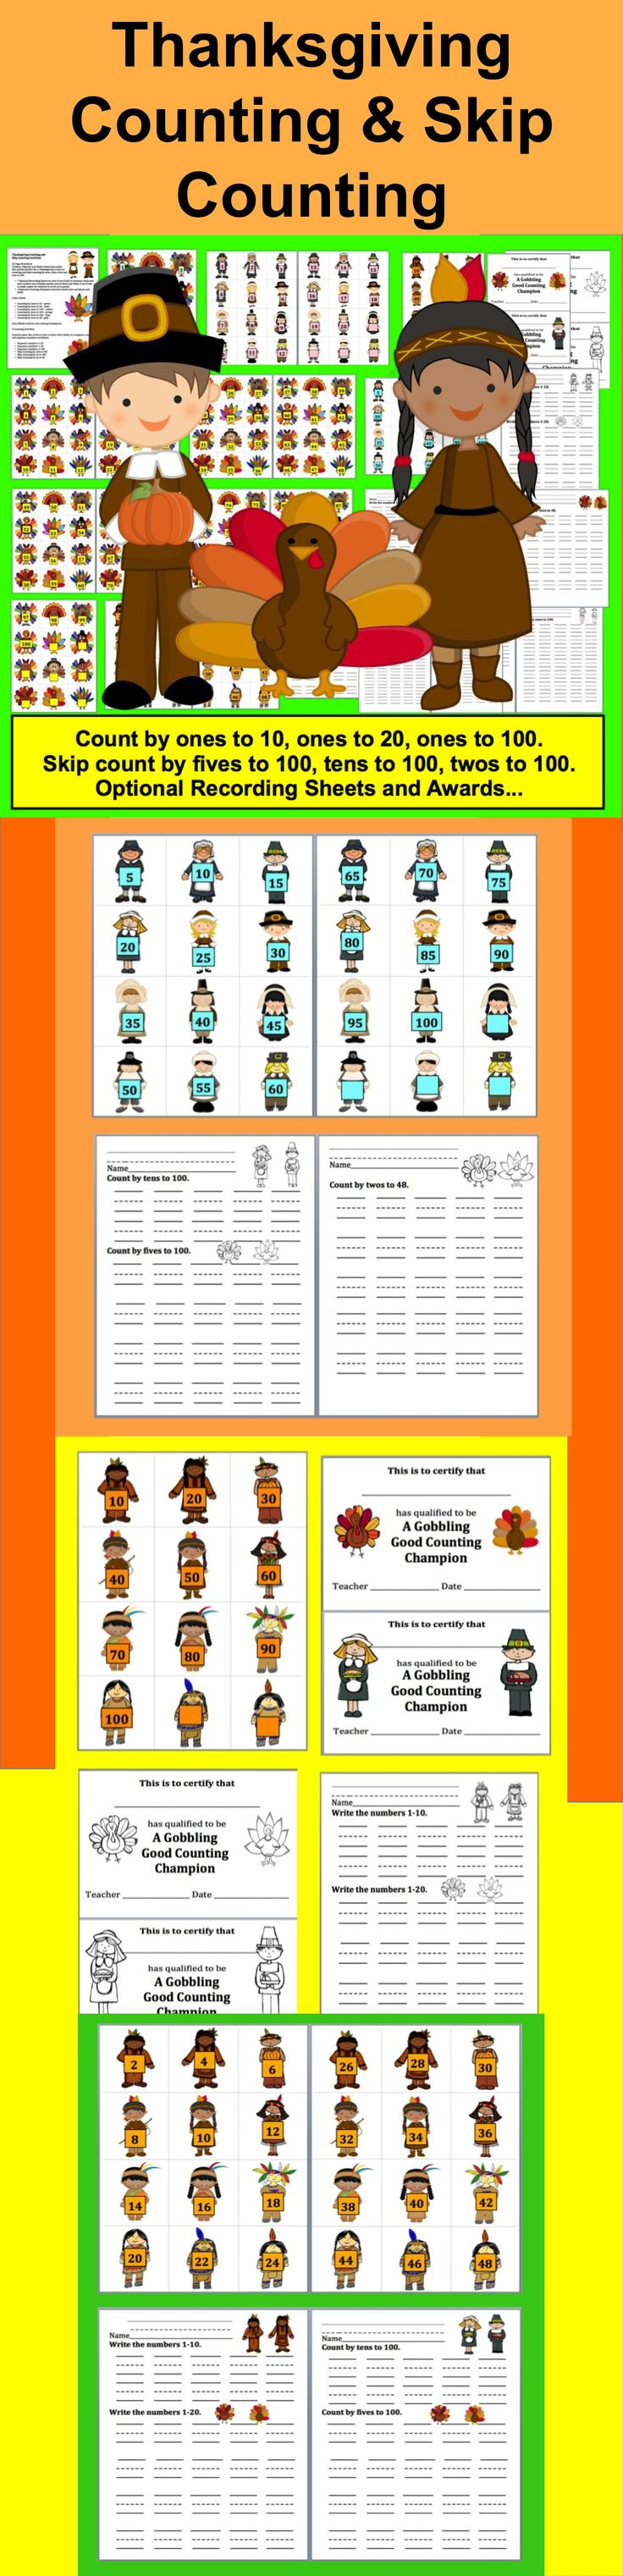 $ Thanksgiving Counting and  Skip Counting Activities -  32 Page Download - Turkeys, Pilgrims and Native Americans make this activity perfect for a Thanksgiving review of counting and skip counting by ones, twos, fives and tens to 100.